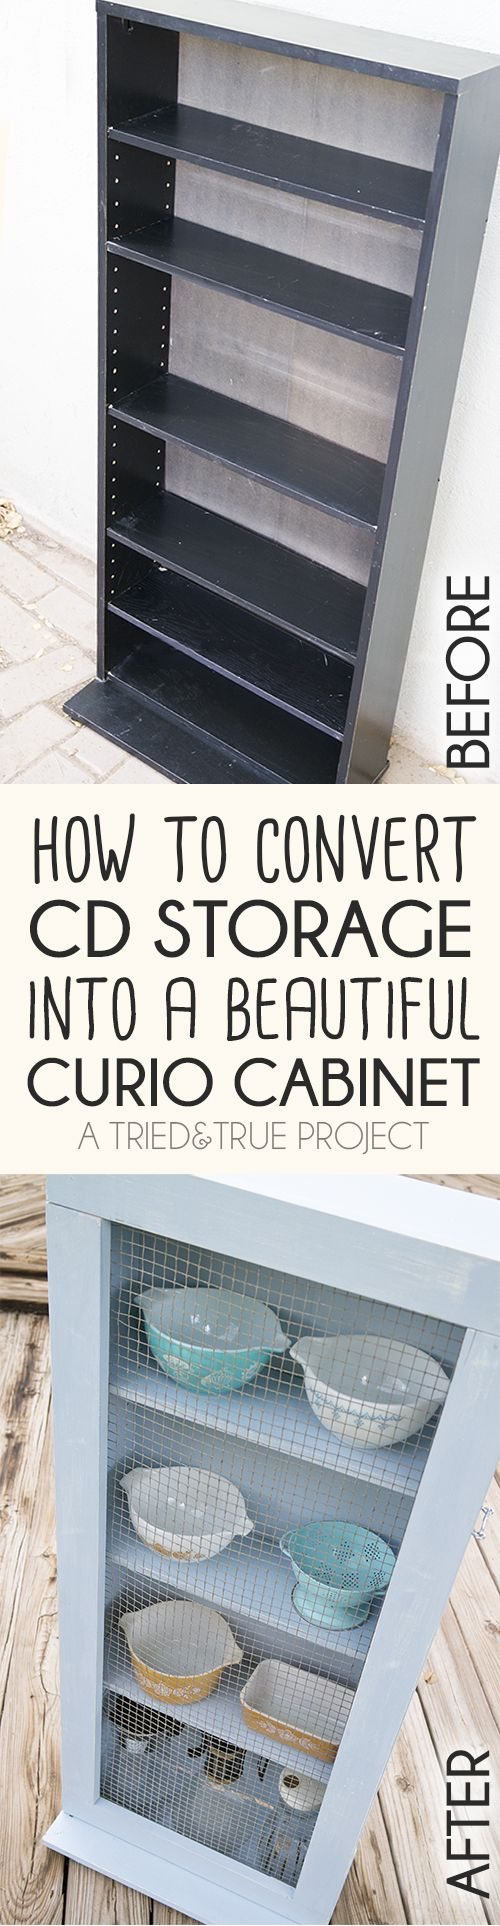 How to convert a thrifted CD storage shelf into an adorable farmhouse chic cabinet!